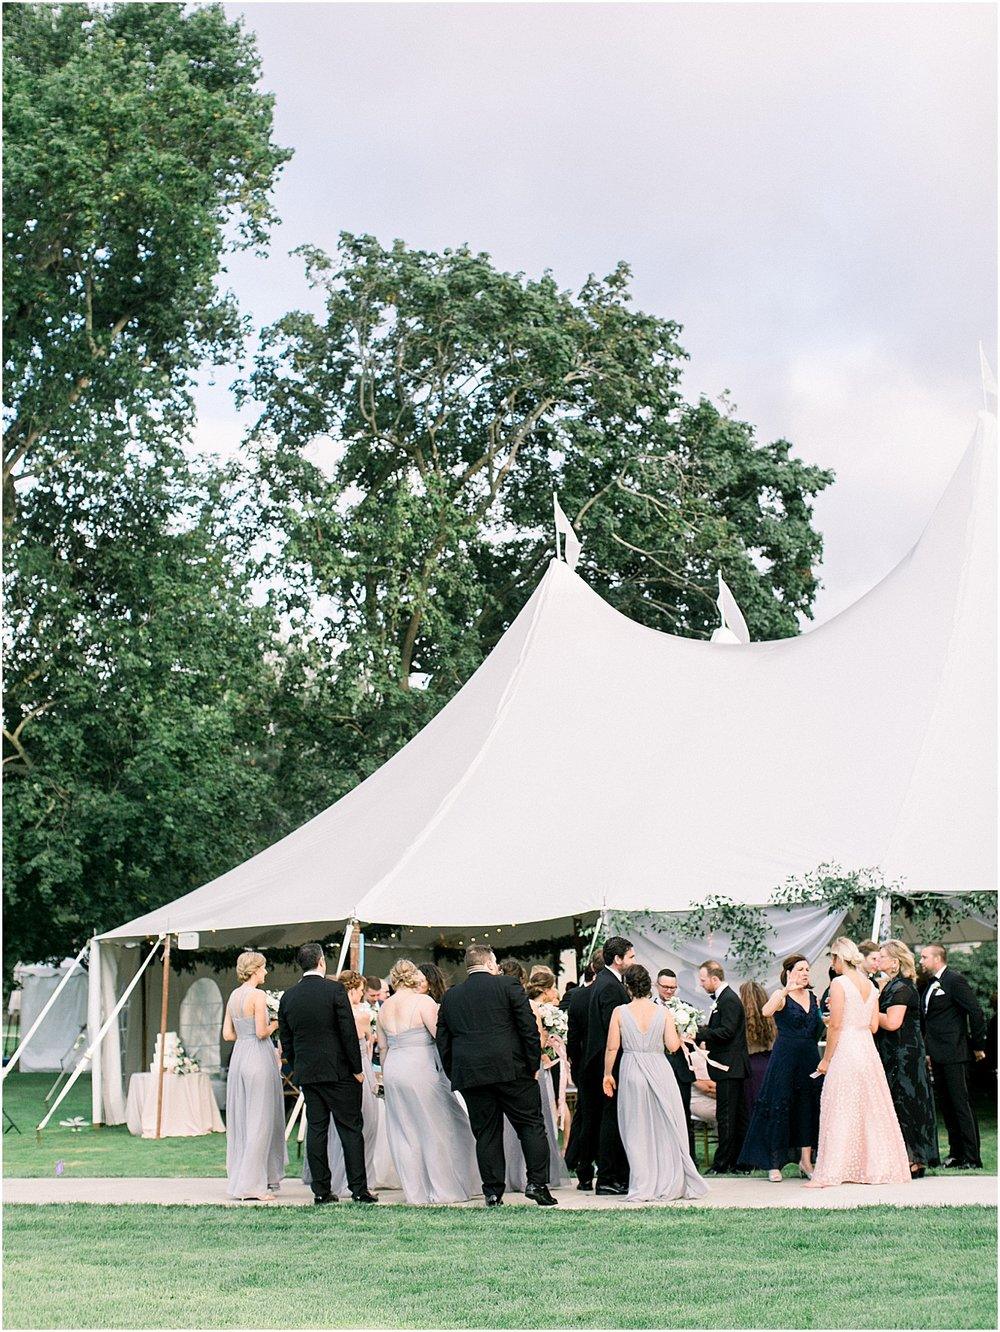 our_wedding_day_troy_NY_emma_willard_fairy_tale_royal_neutral_beauty_and_the_beast_moped_private_estate_cape_cod_boston_wedding_photographer_meredith_jane_photography_chris_kerr_photo_1991.jpg